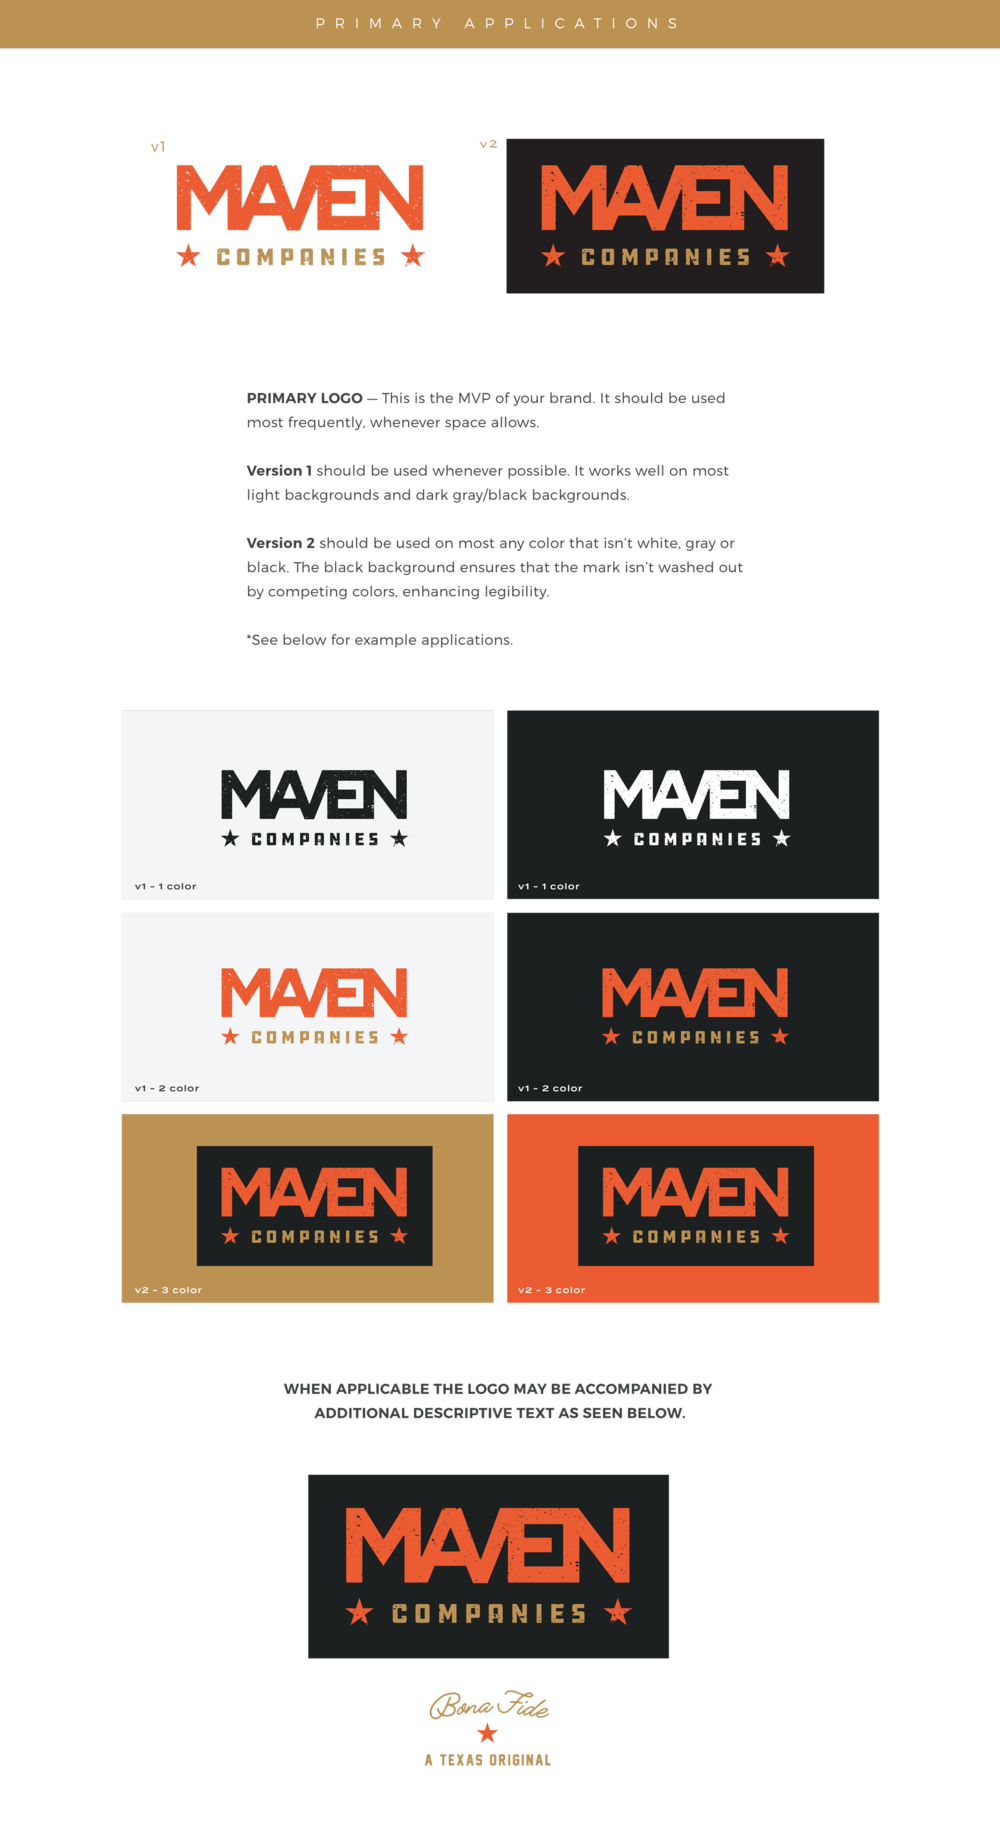 Maven-Style-Guide-4-12-18-v1_02.png